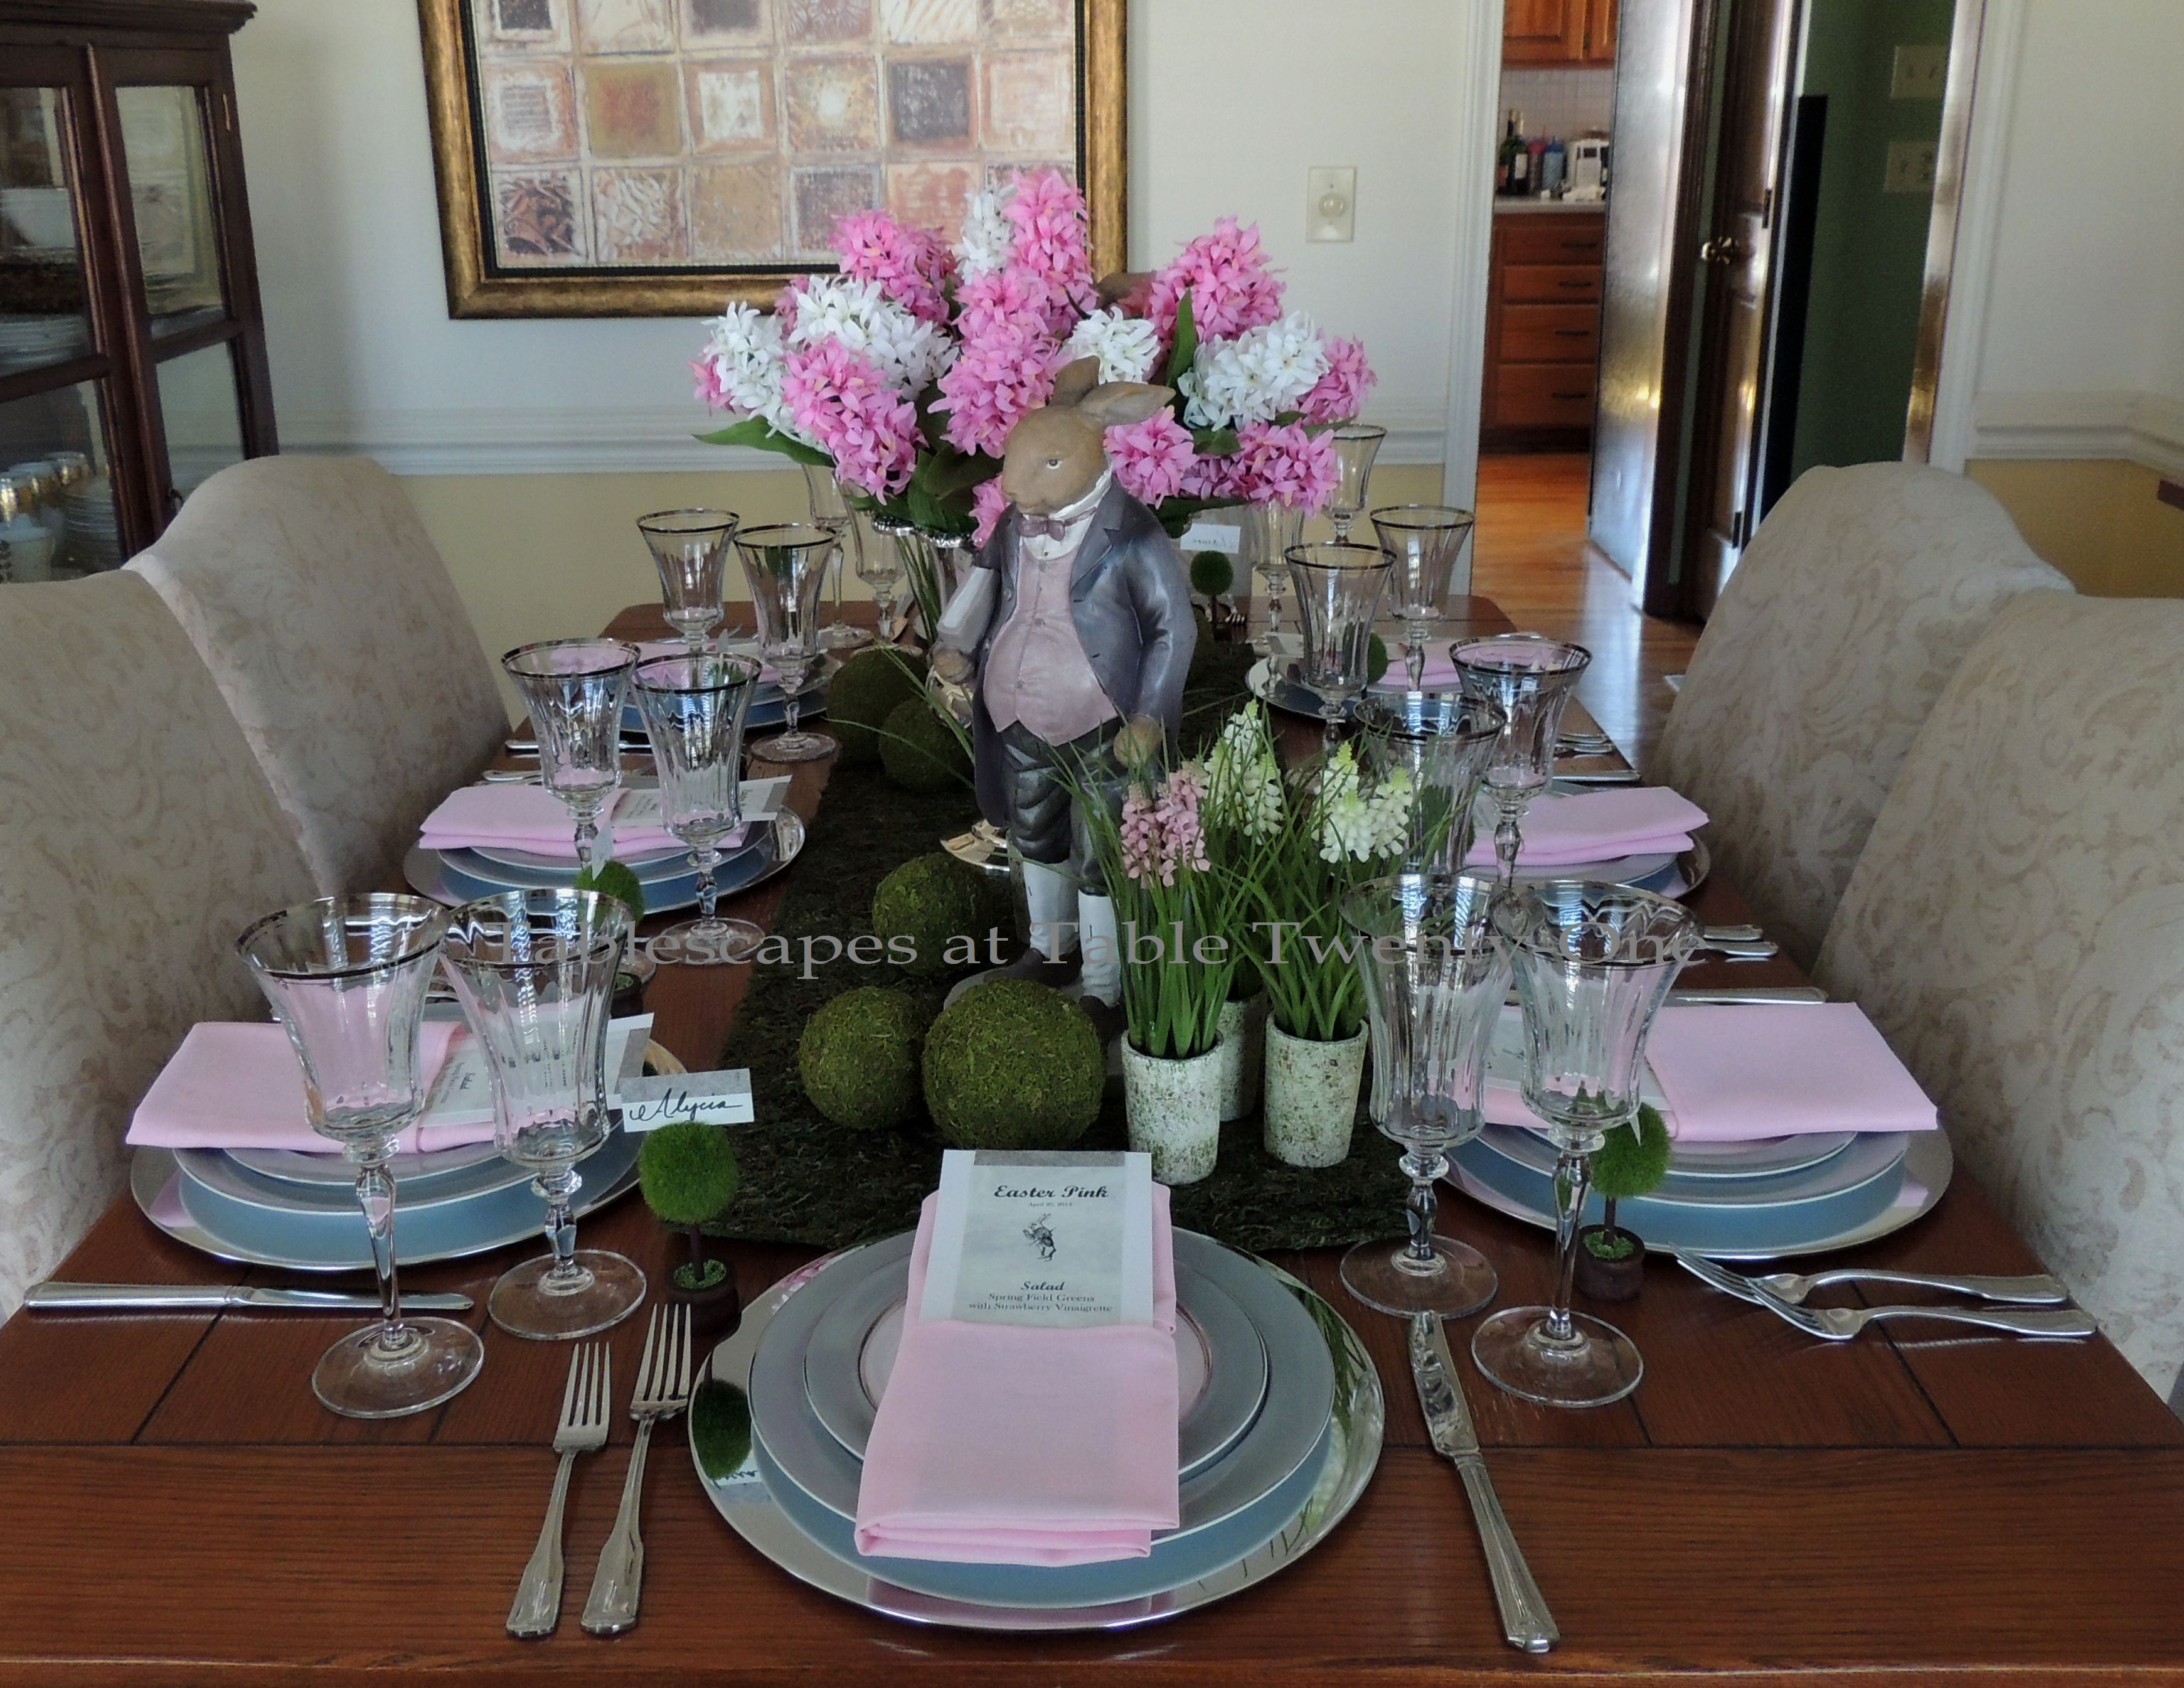 Tablescapes at Table Twenty-One, www.tabletwentyone.wordpress.com - Easter in Pink & Grey: Full table lengthwise